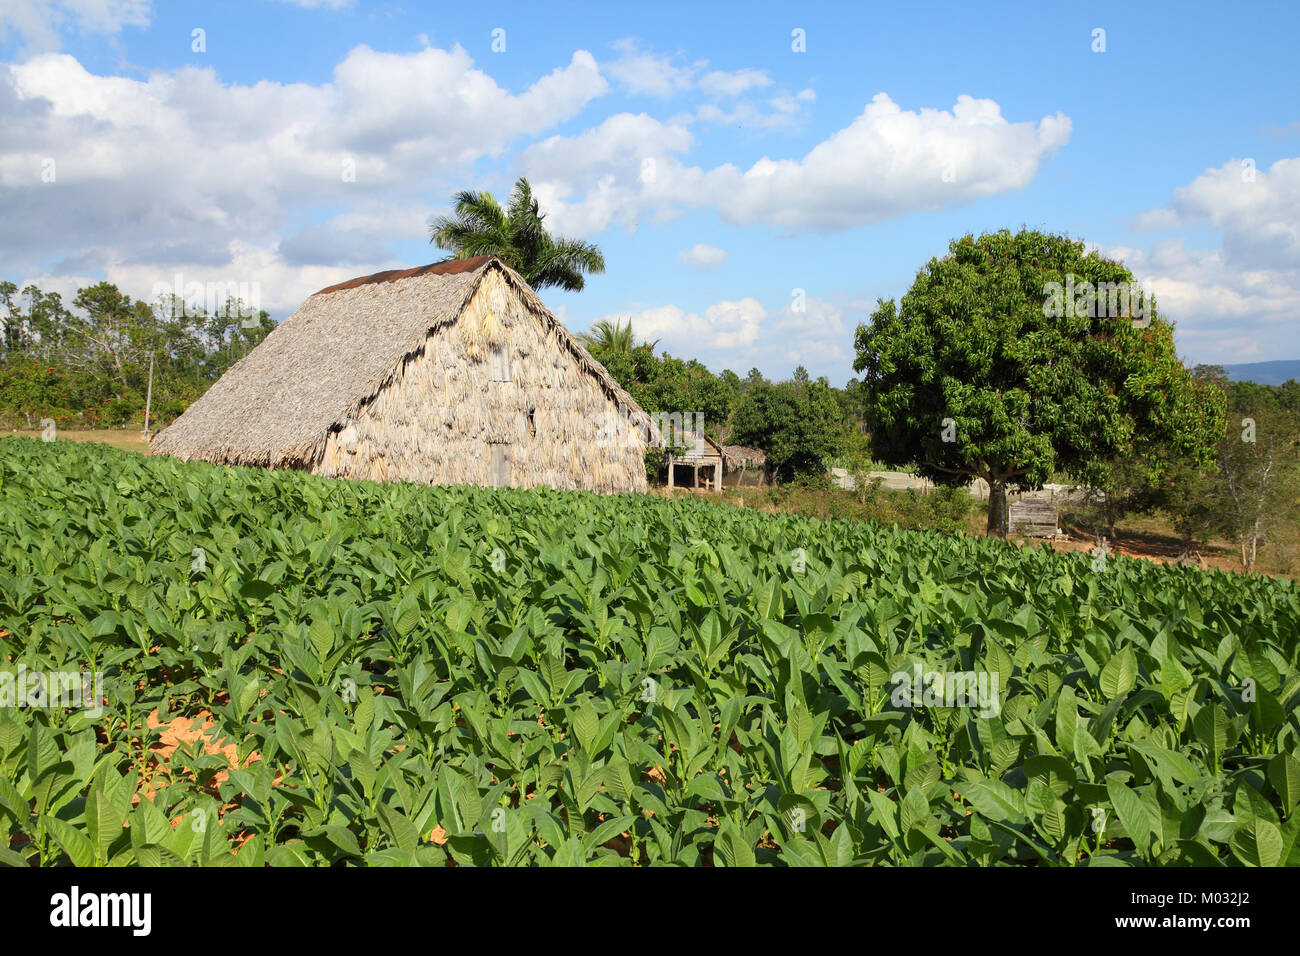 Cuba - tobacco plantation and thatched rural huts in Vinales National Park. UNESCO World Heritage Site. - Stock Image